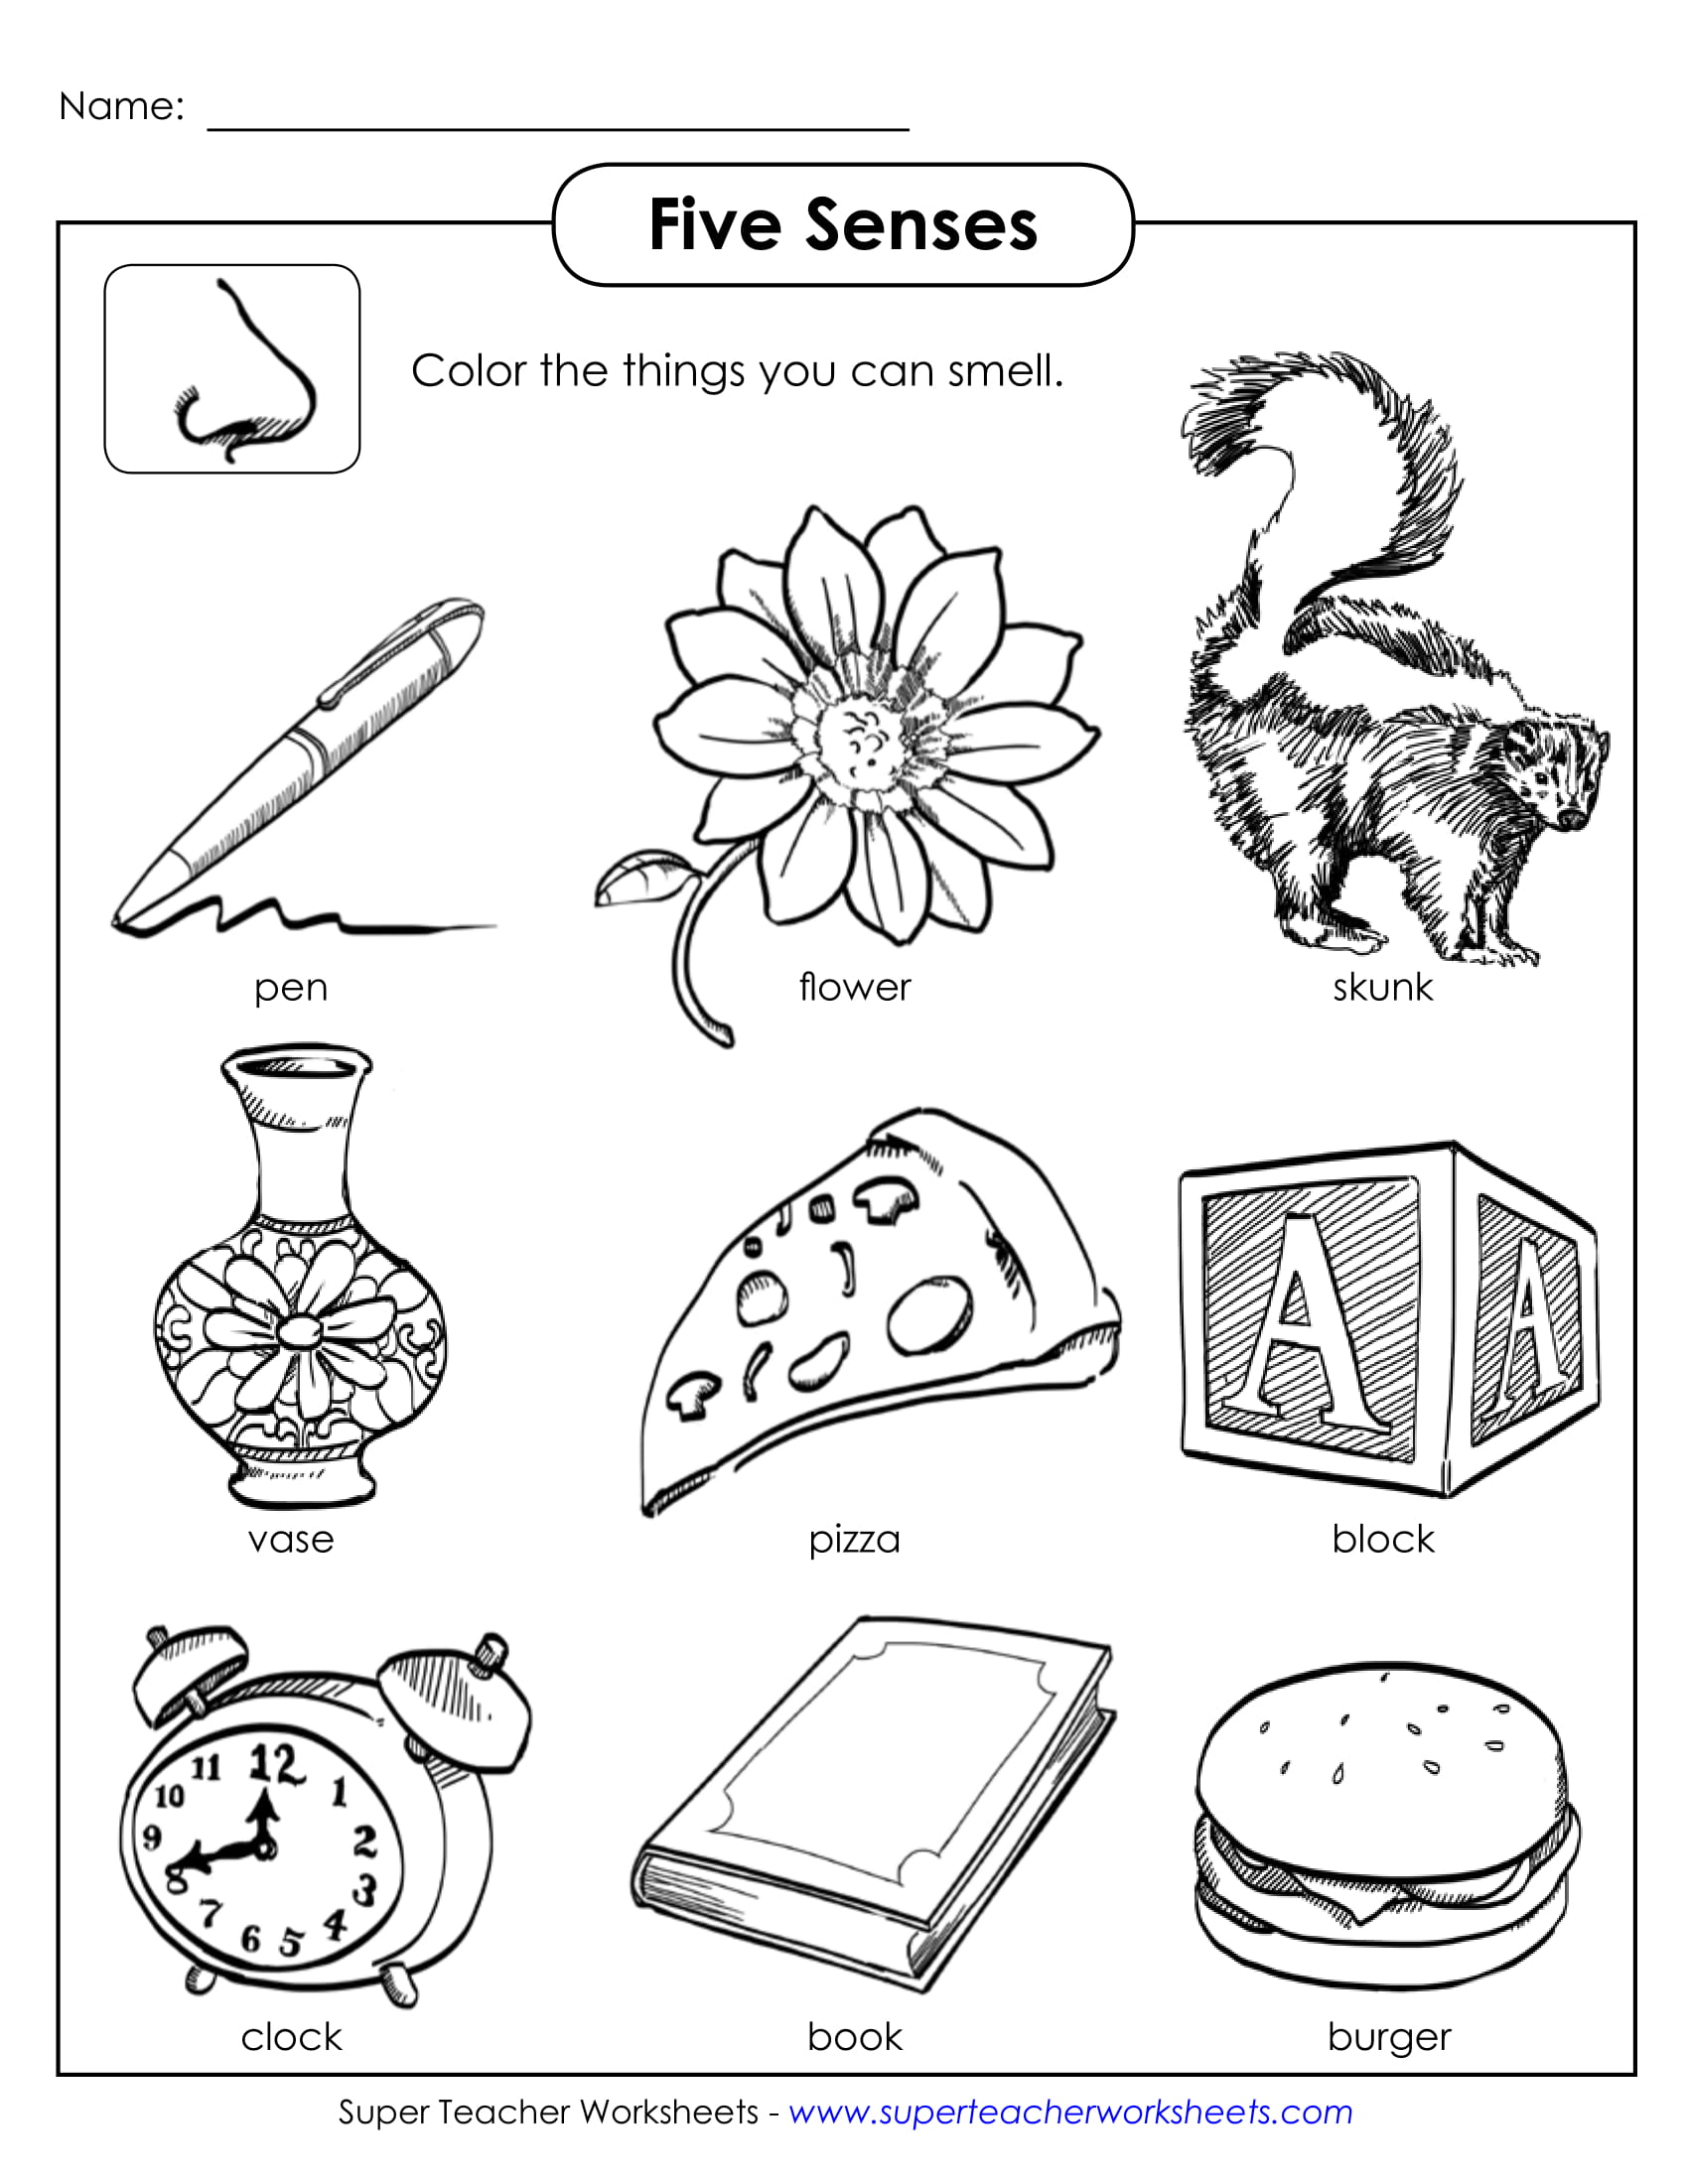 Five Senses Sample Activity Example